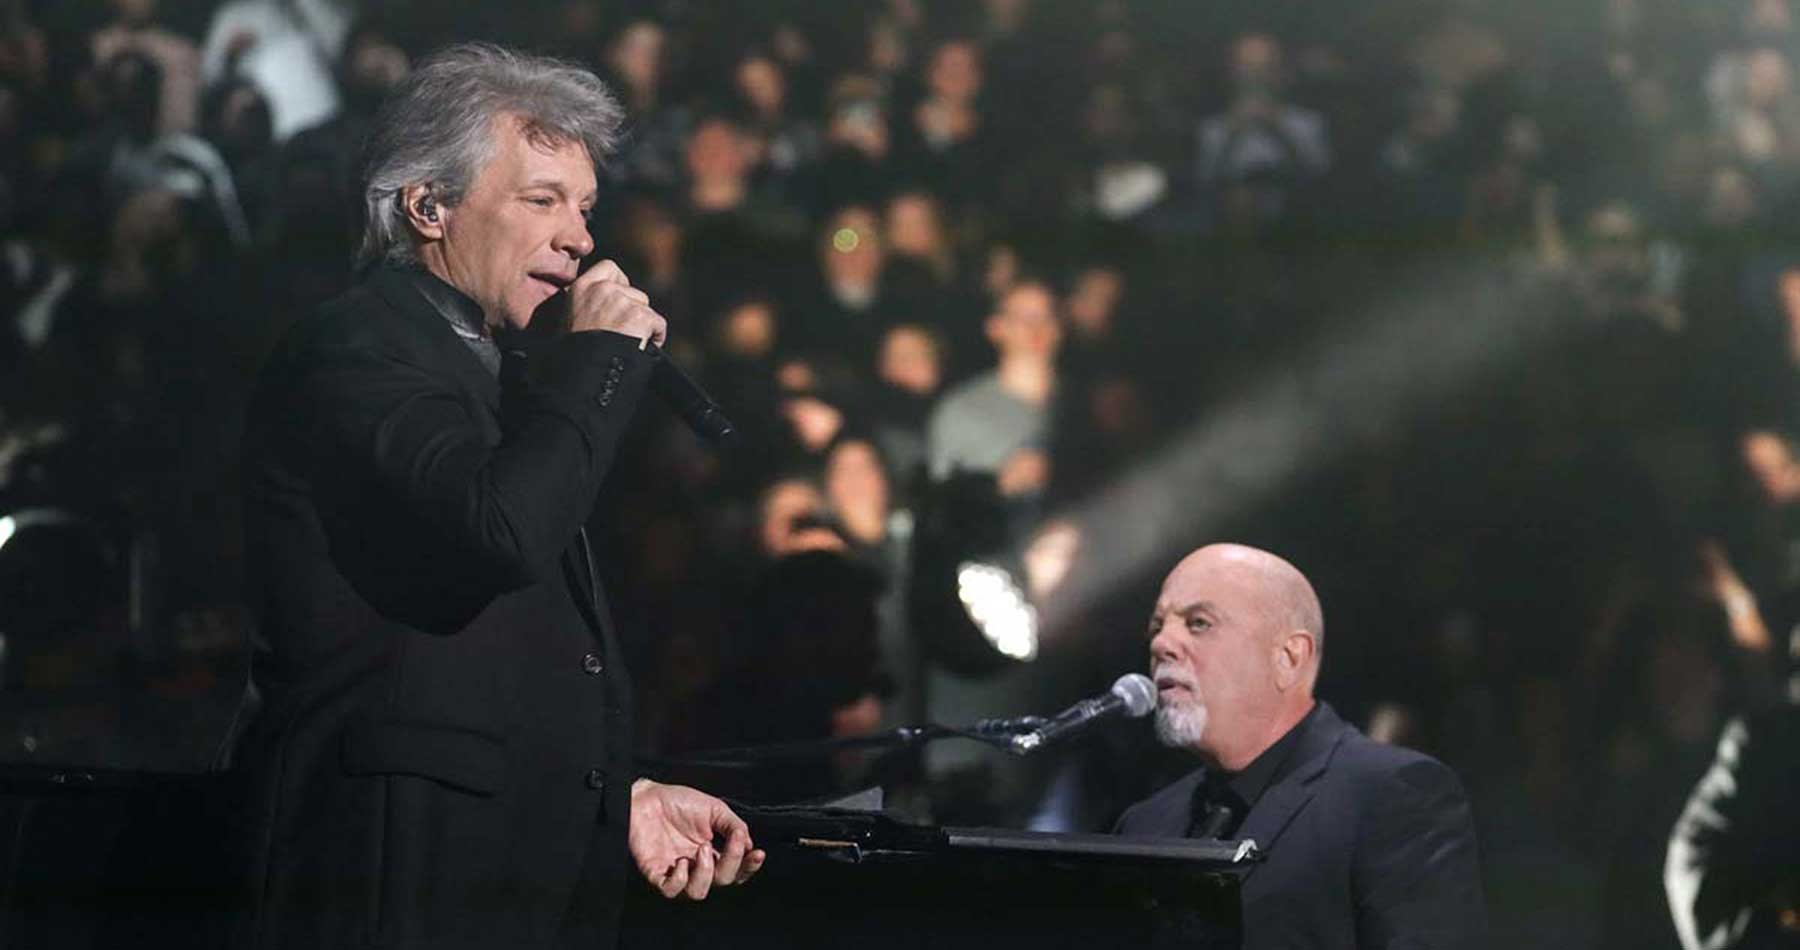 Billy Joel Concert At Madison Square Garden in New York, NY – January 25, 2020